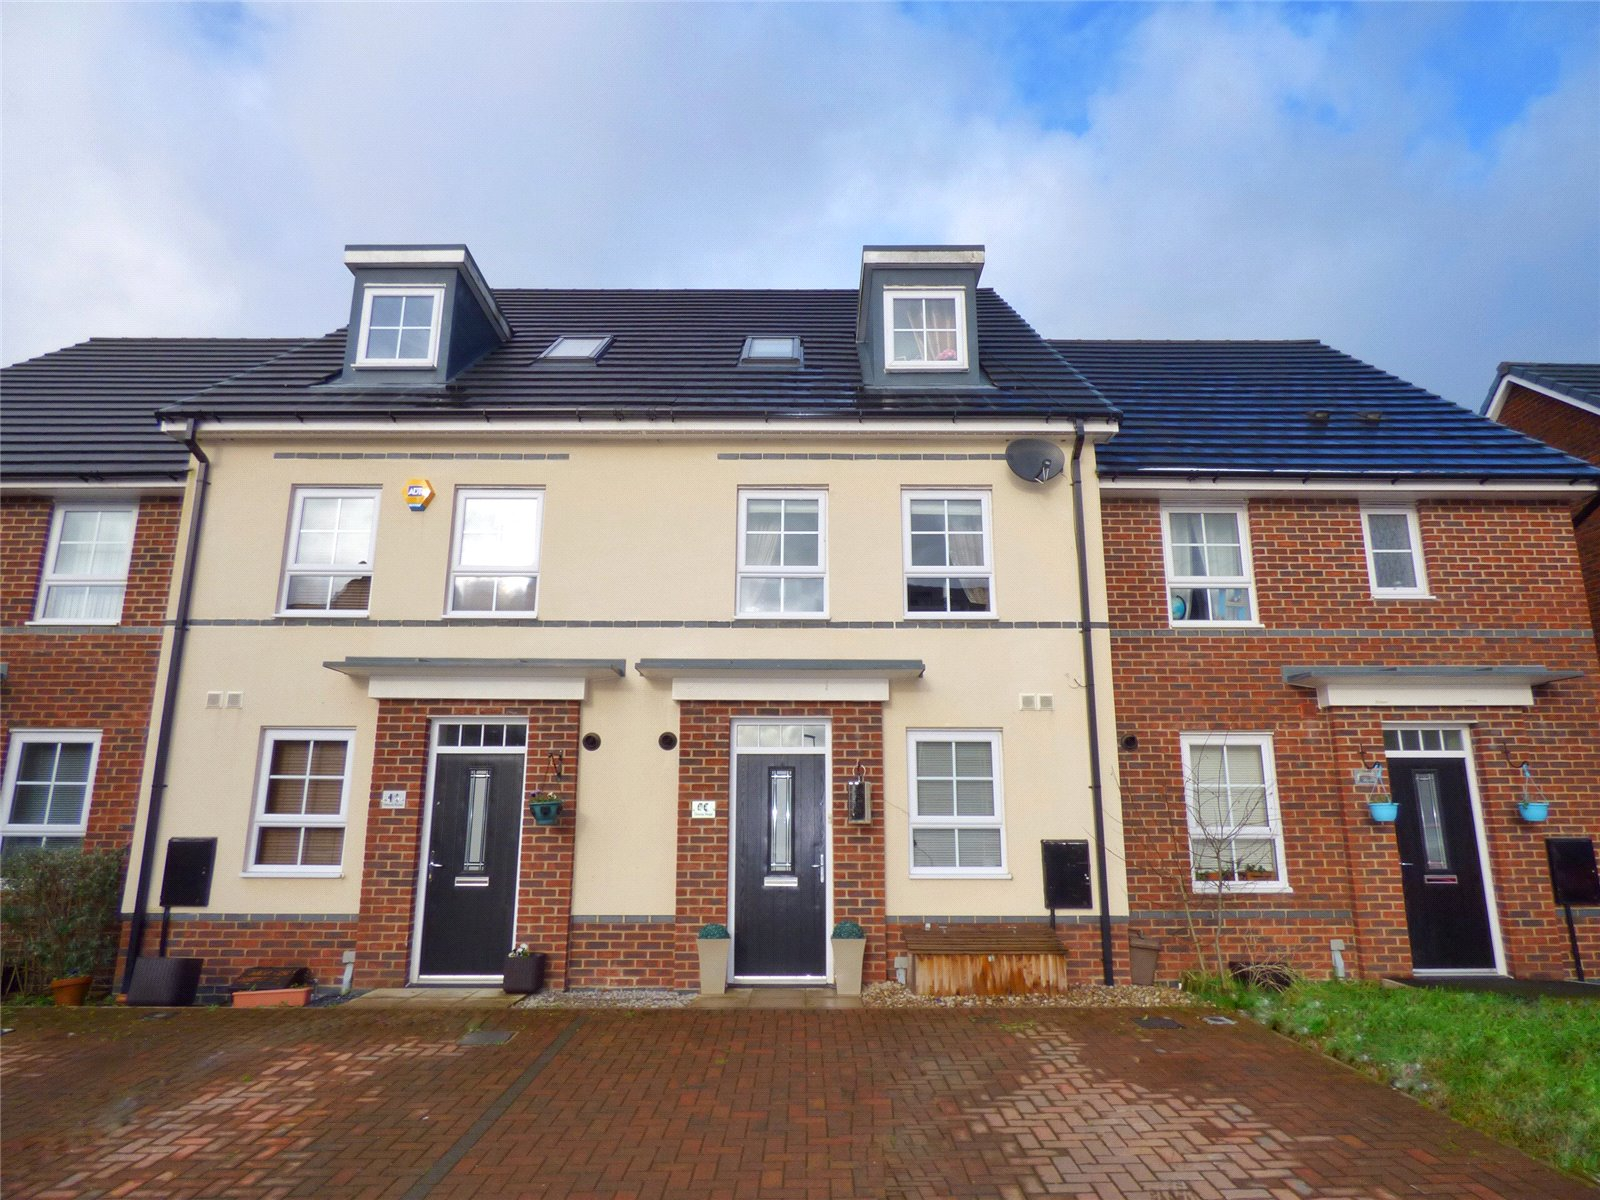 3 Bedrooms Terraced House for sale in Omrod Road, Heywood, Greater Manchester, OL10